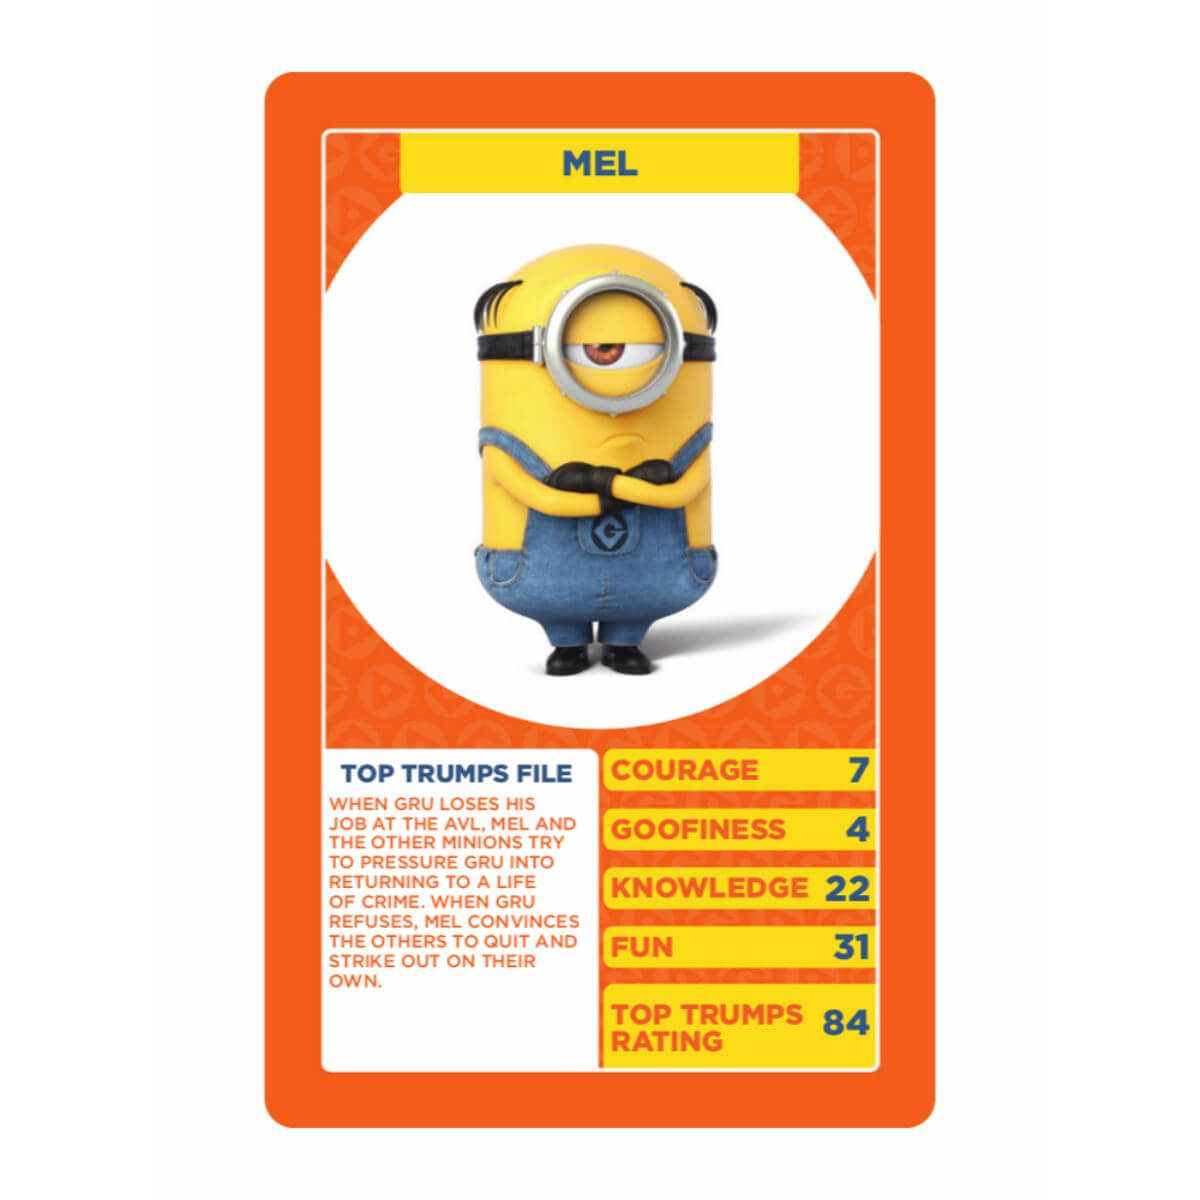 Details About Despicable Me 3 Top Trumps Card Game Inside Top Trump Card Template